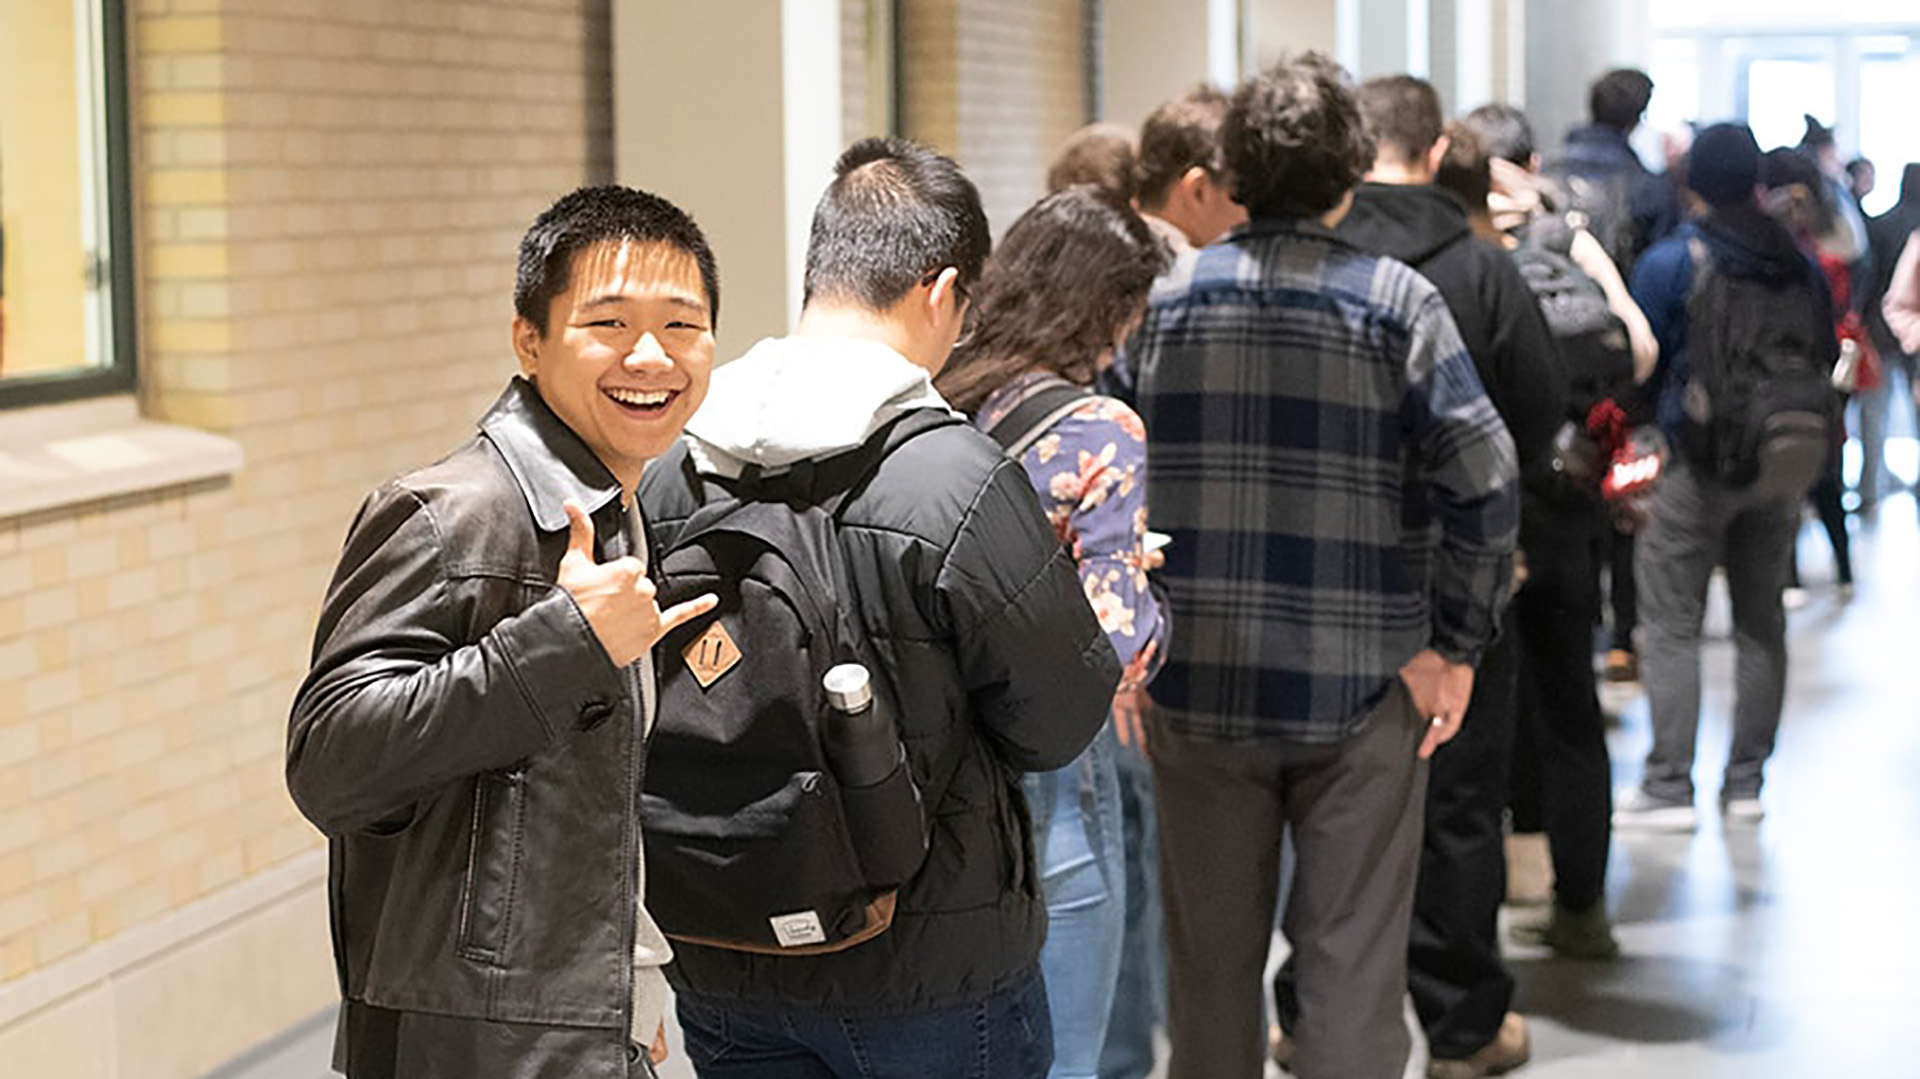 Smiling student in line with other students